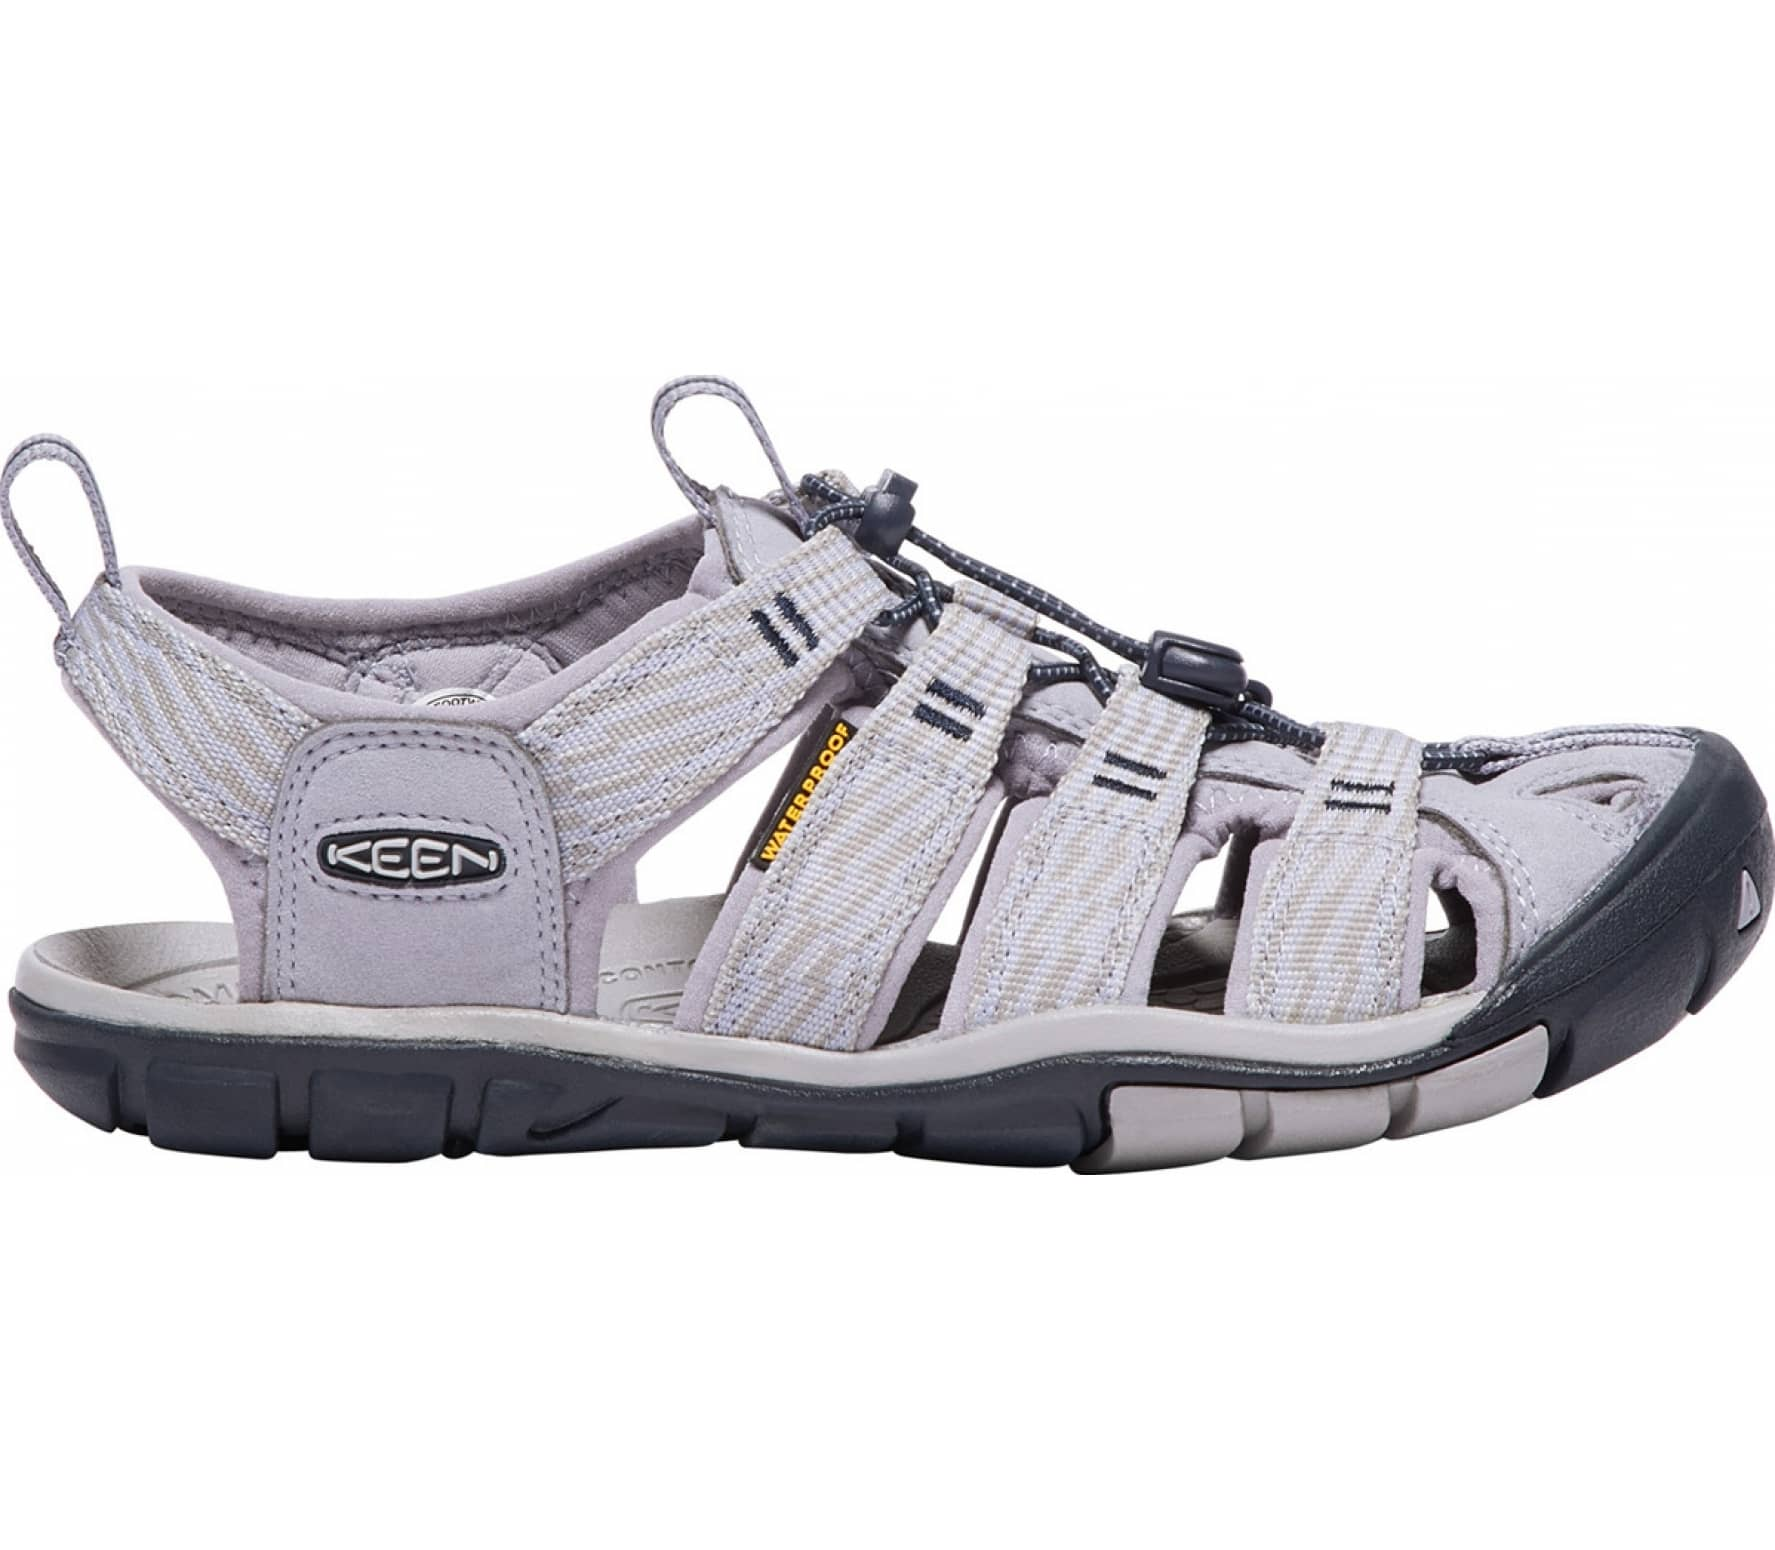 c421eb4b7894 Keen - Clearwater Cnx women s outdoor sandals (grey) - buy it at the ...